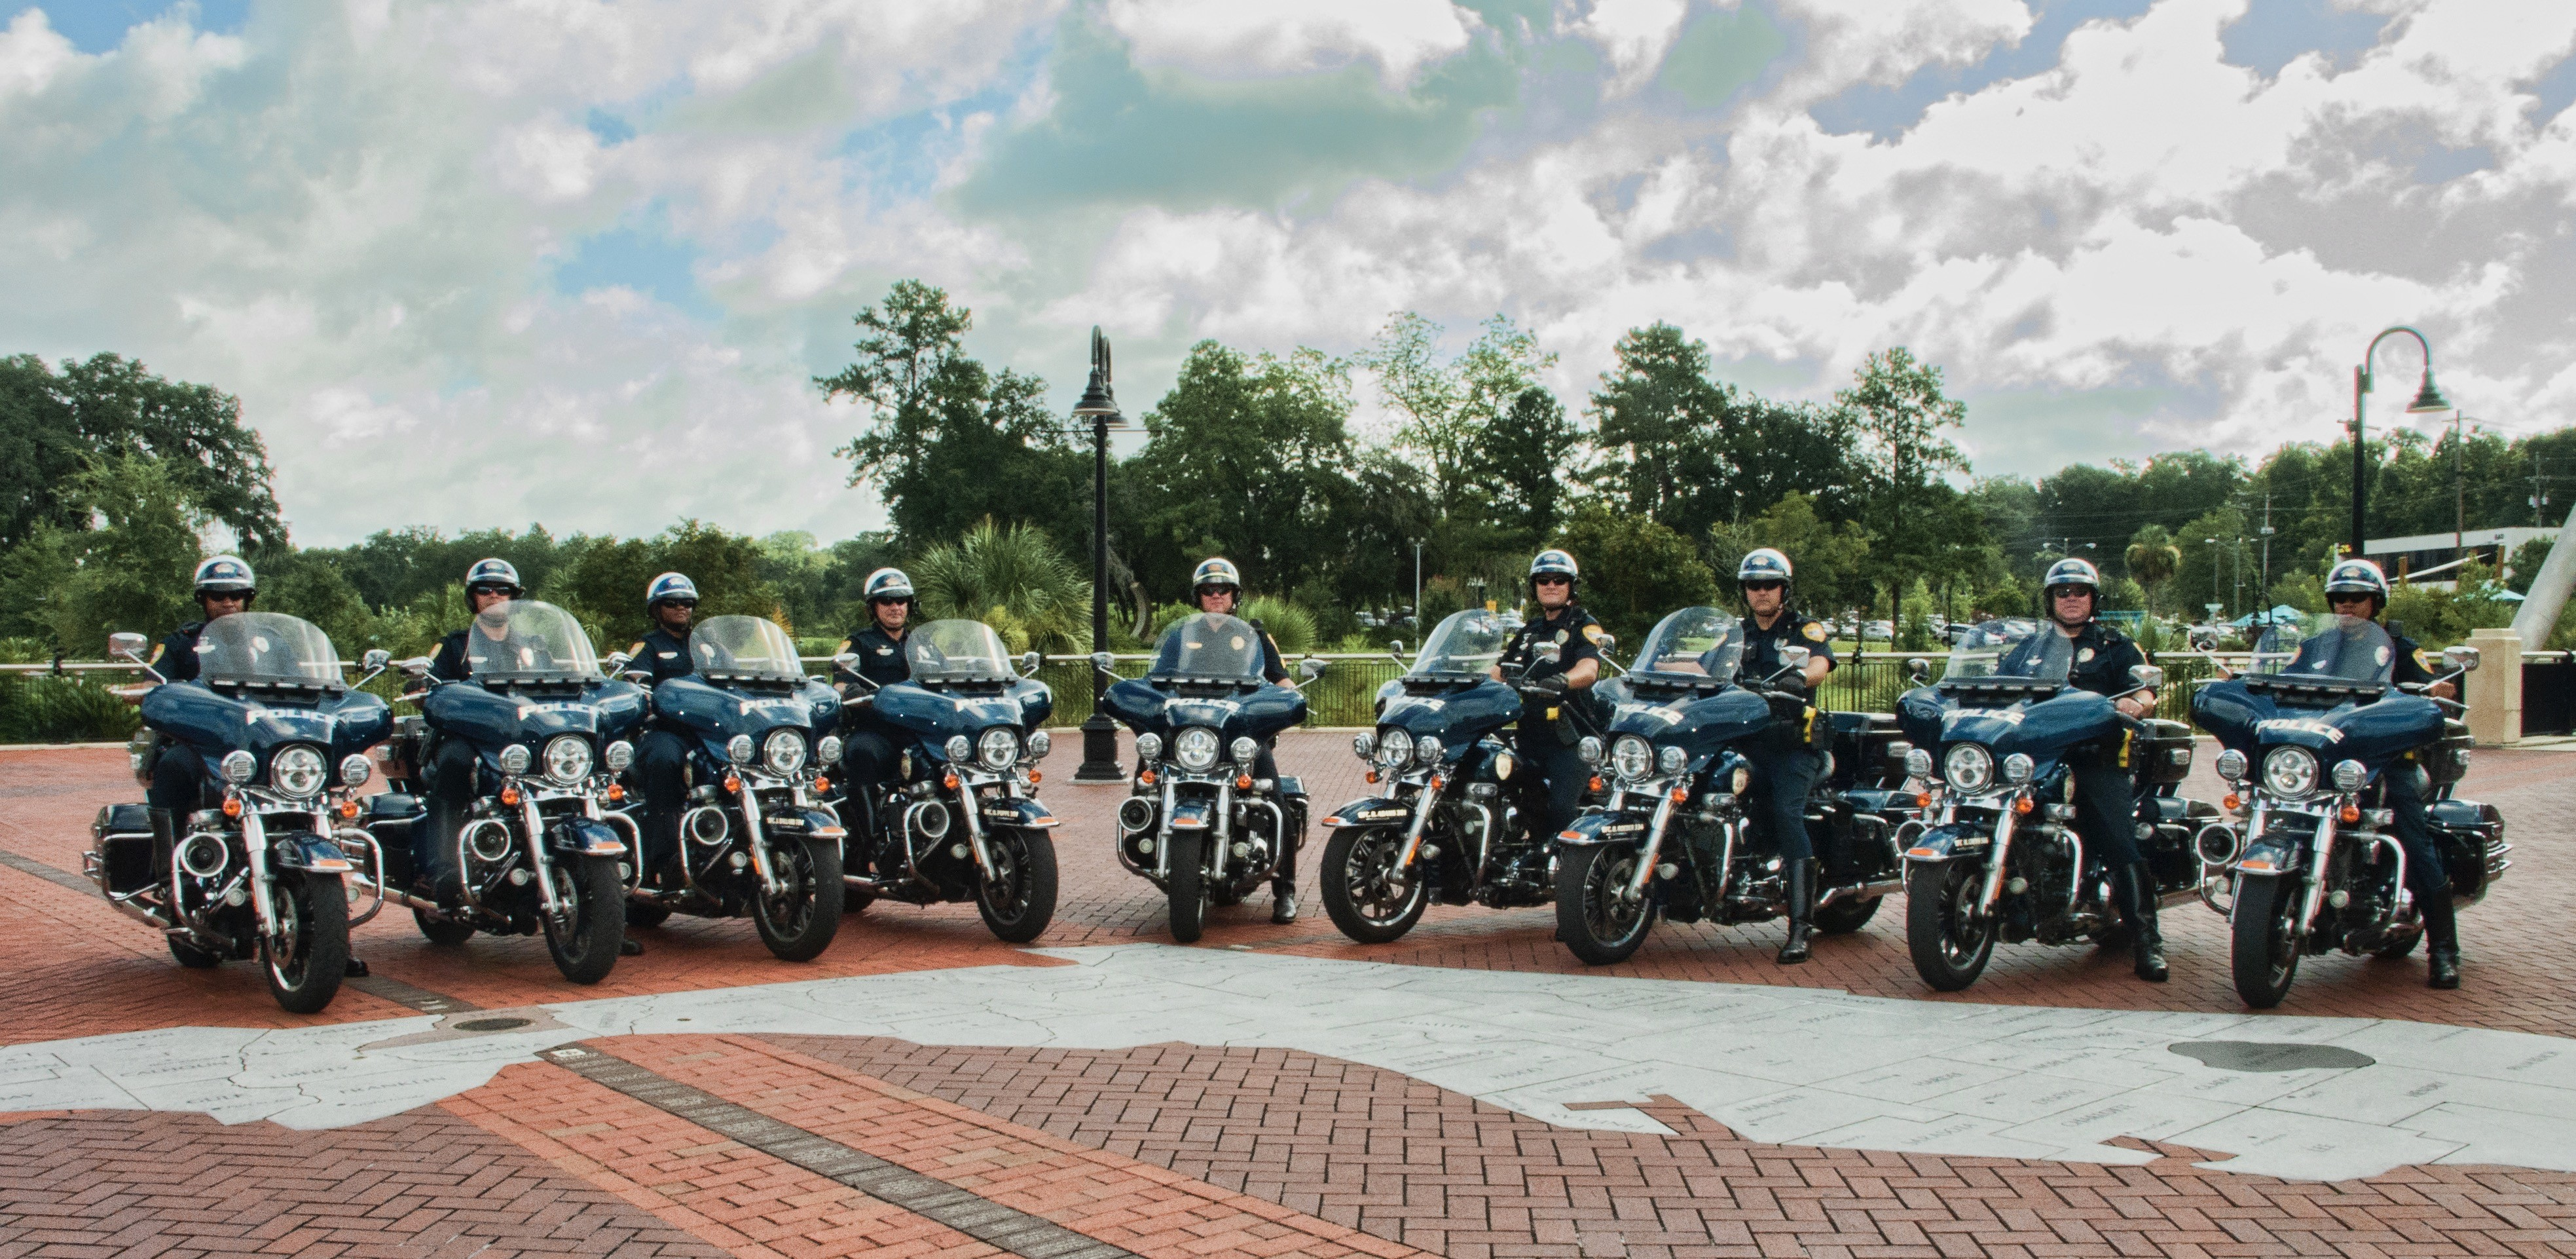 City of Tallahassee Police Department | LinkedIn